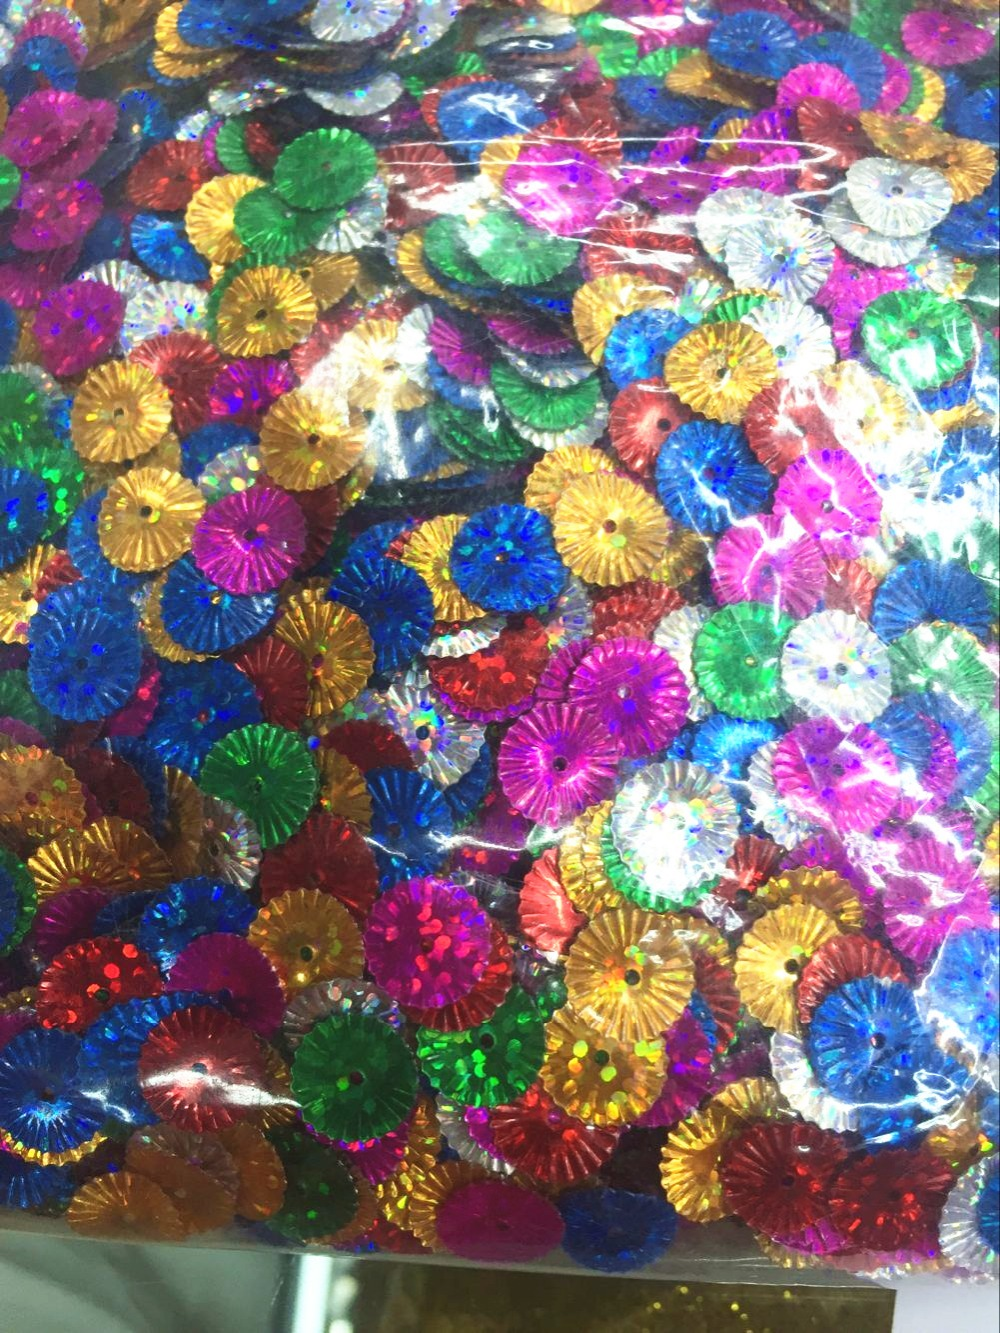 30g/lot Flower Sequins 9mm PVC Sequin Decoration Sewing DIY Mix Colors Multicolor Hologram Laser Colors Wrinkled Flower Sun image